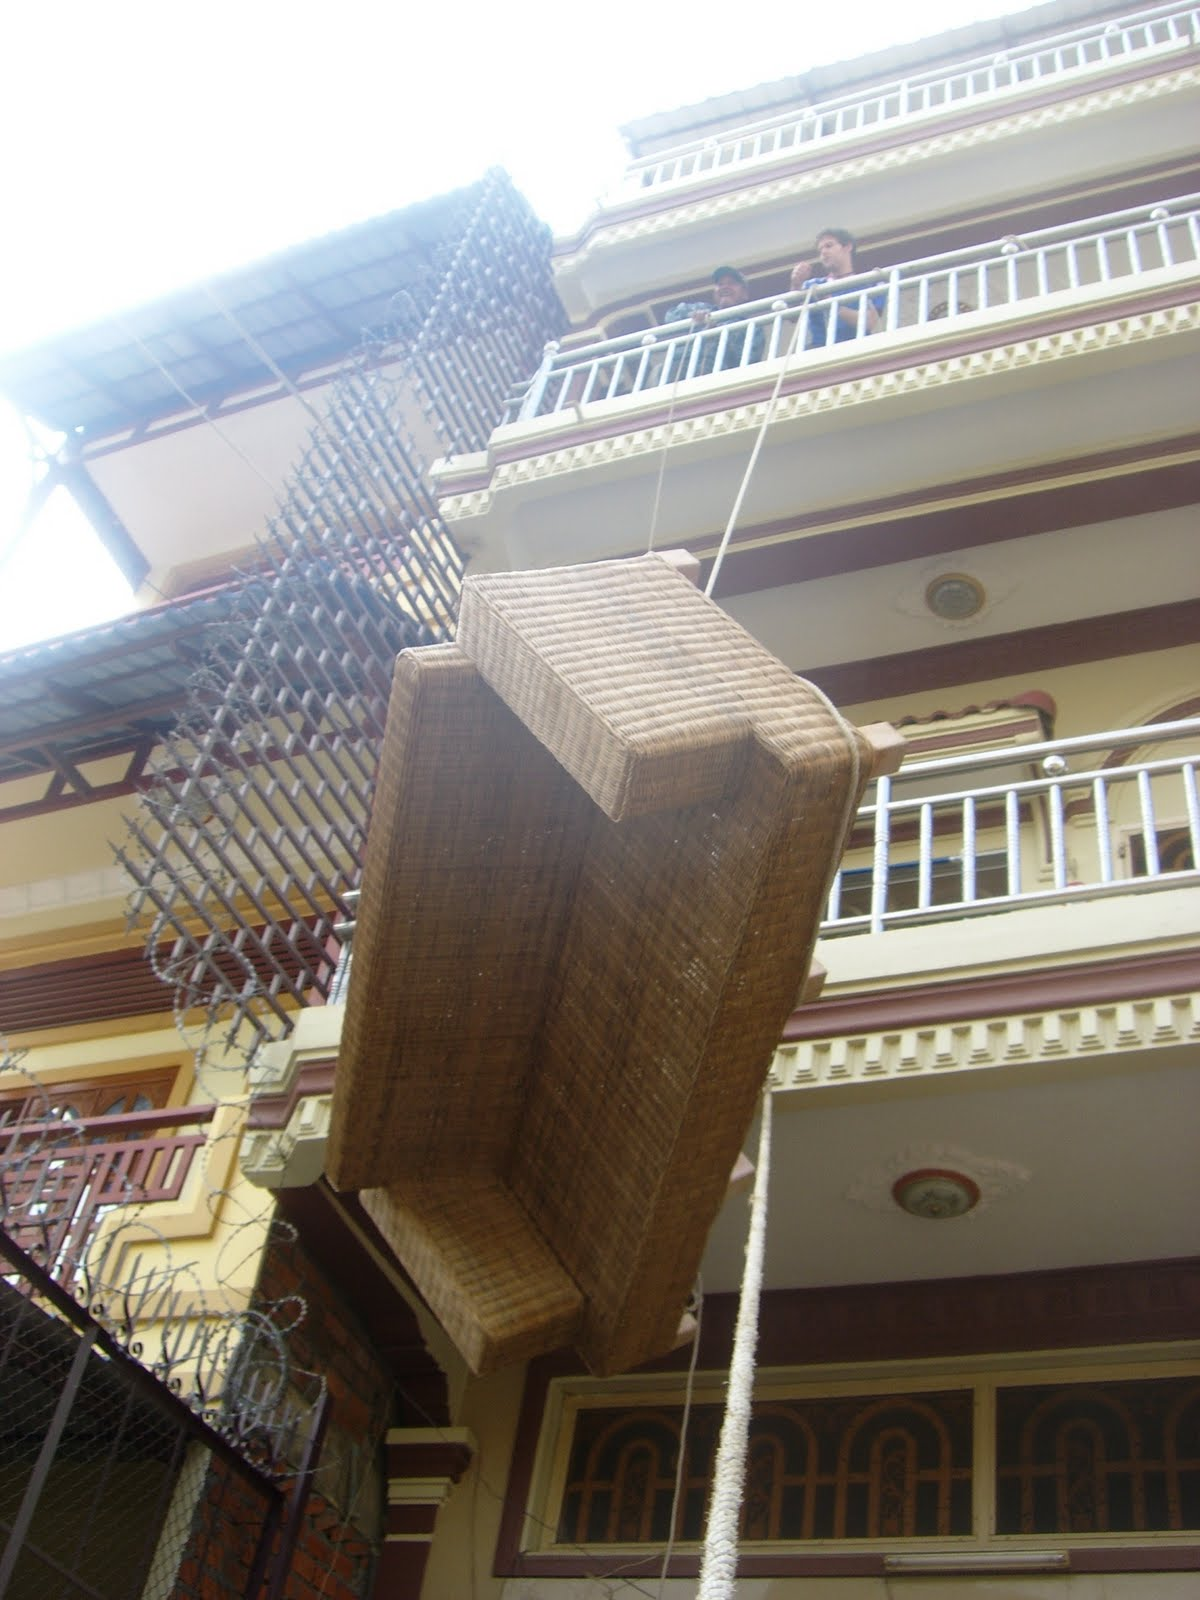 Also Some Images Of Lifting Our Couch To The 3rd Floor Over Balcony Imagine Myself A Small Khmer Moto Driver